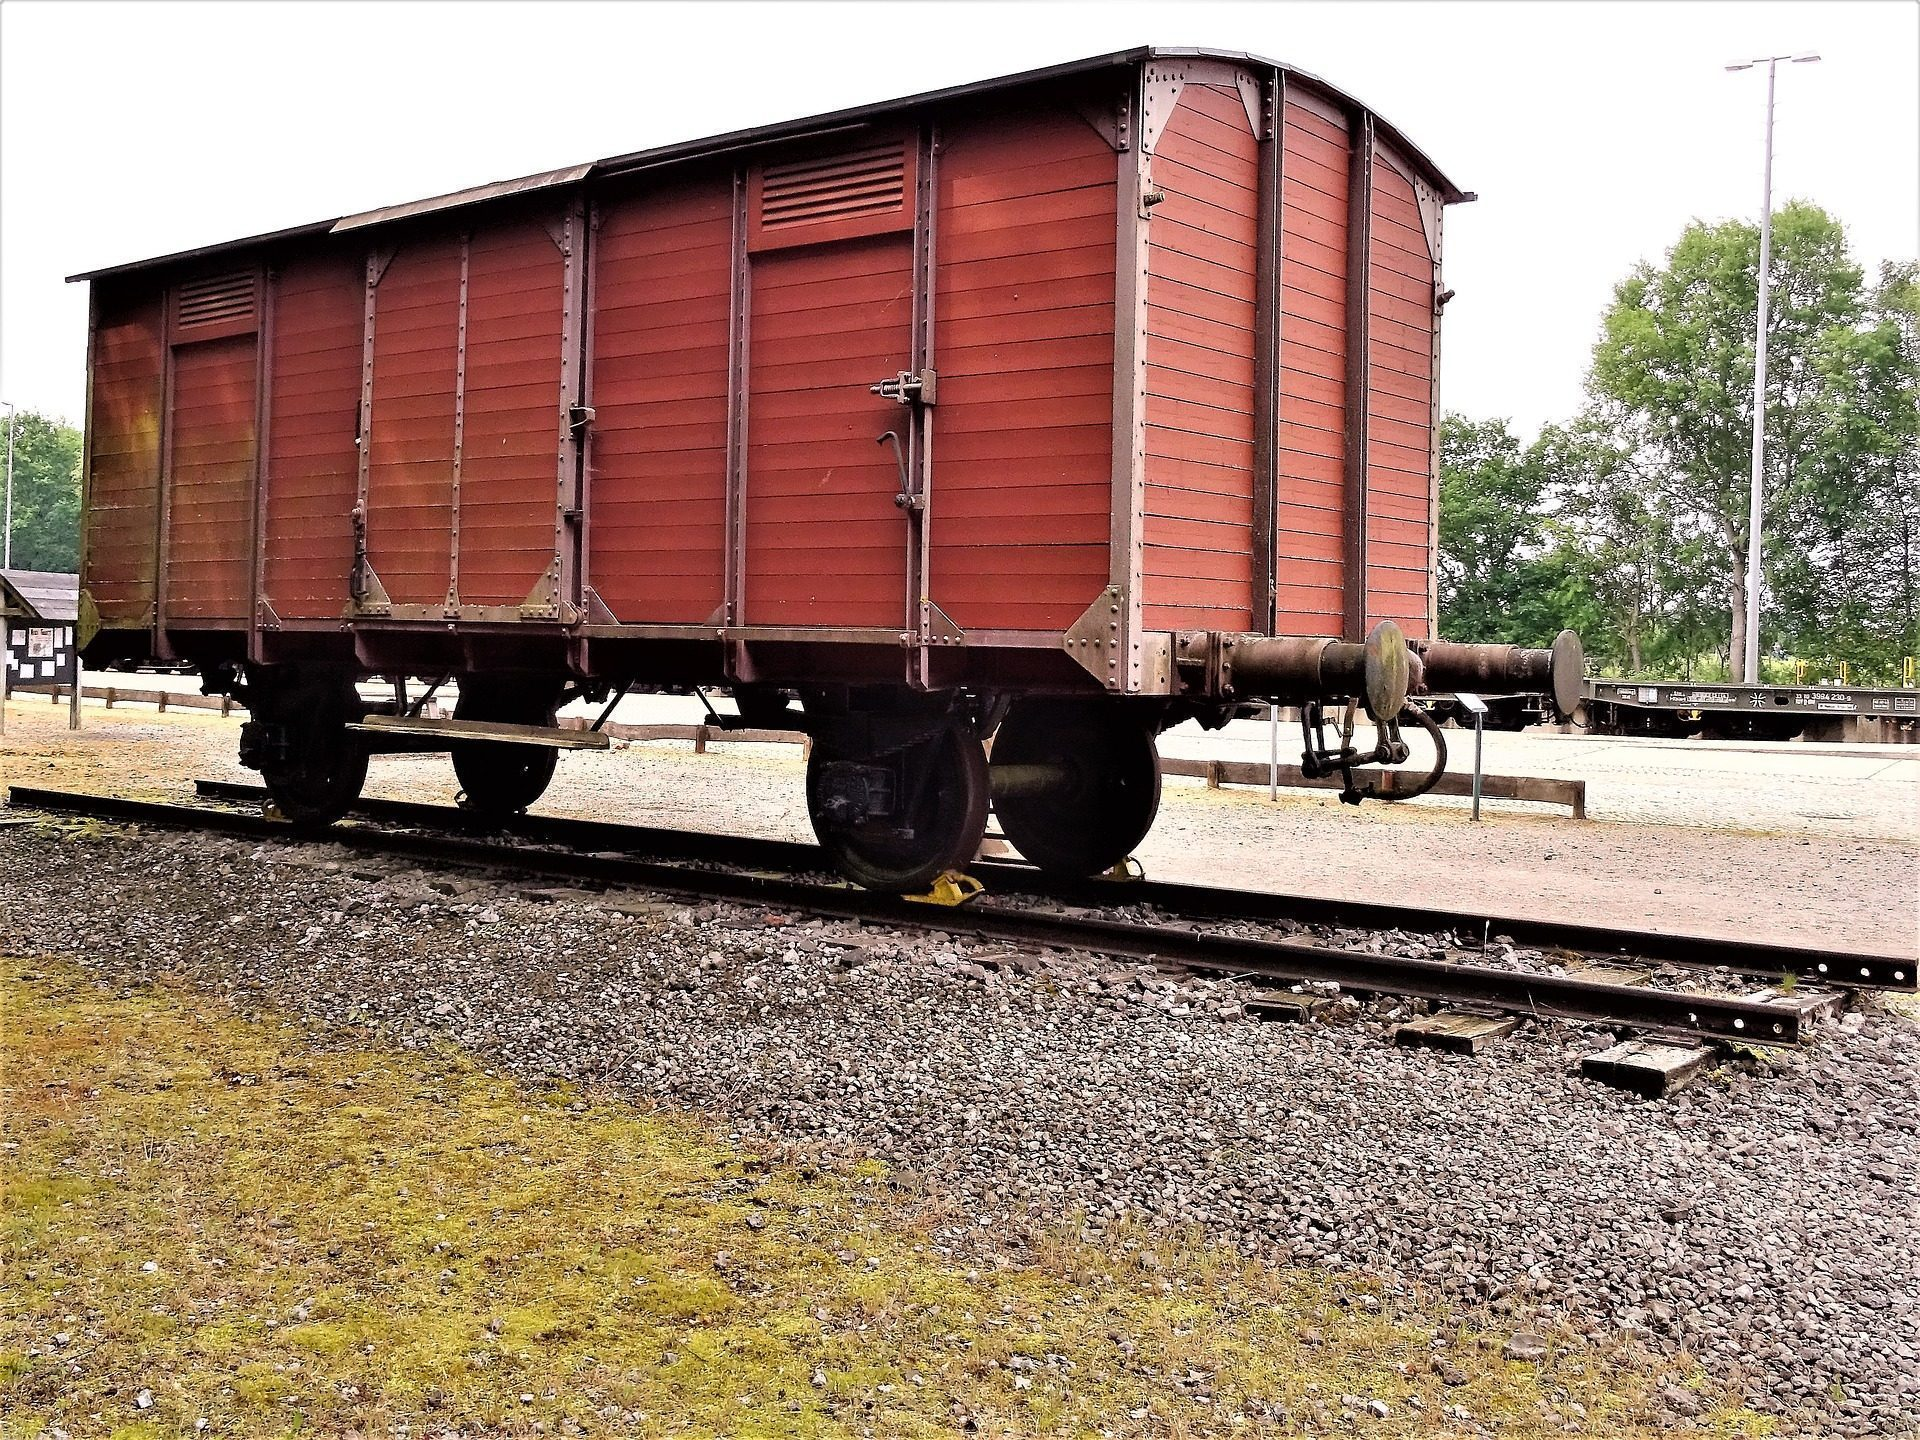 Train Holocaust Bergen-Belsen